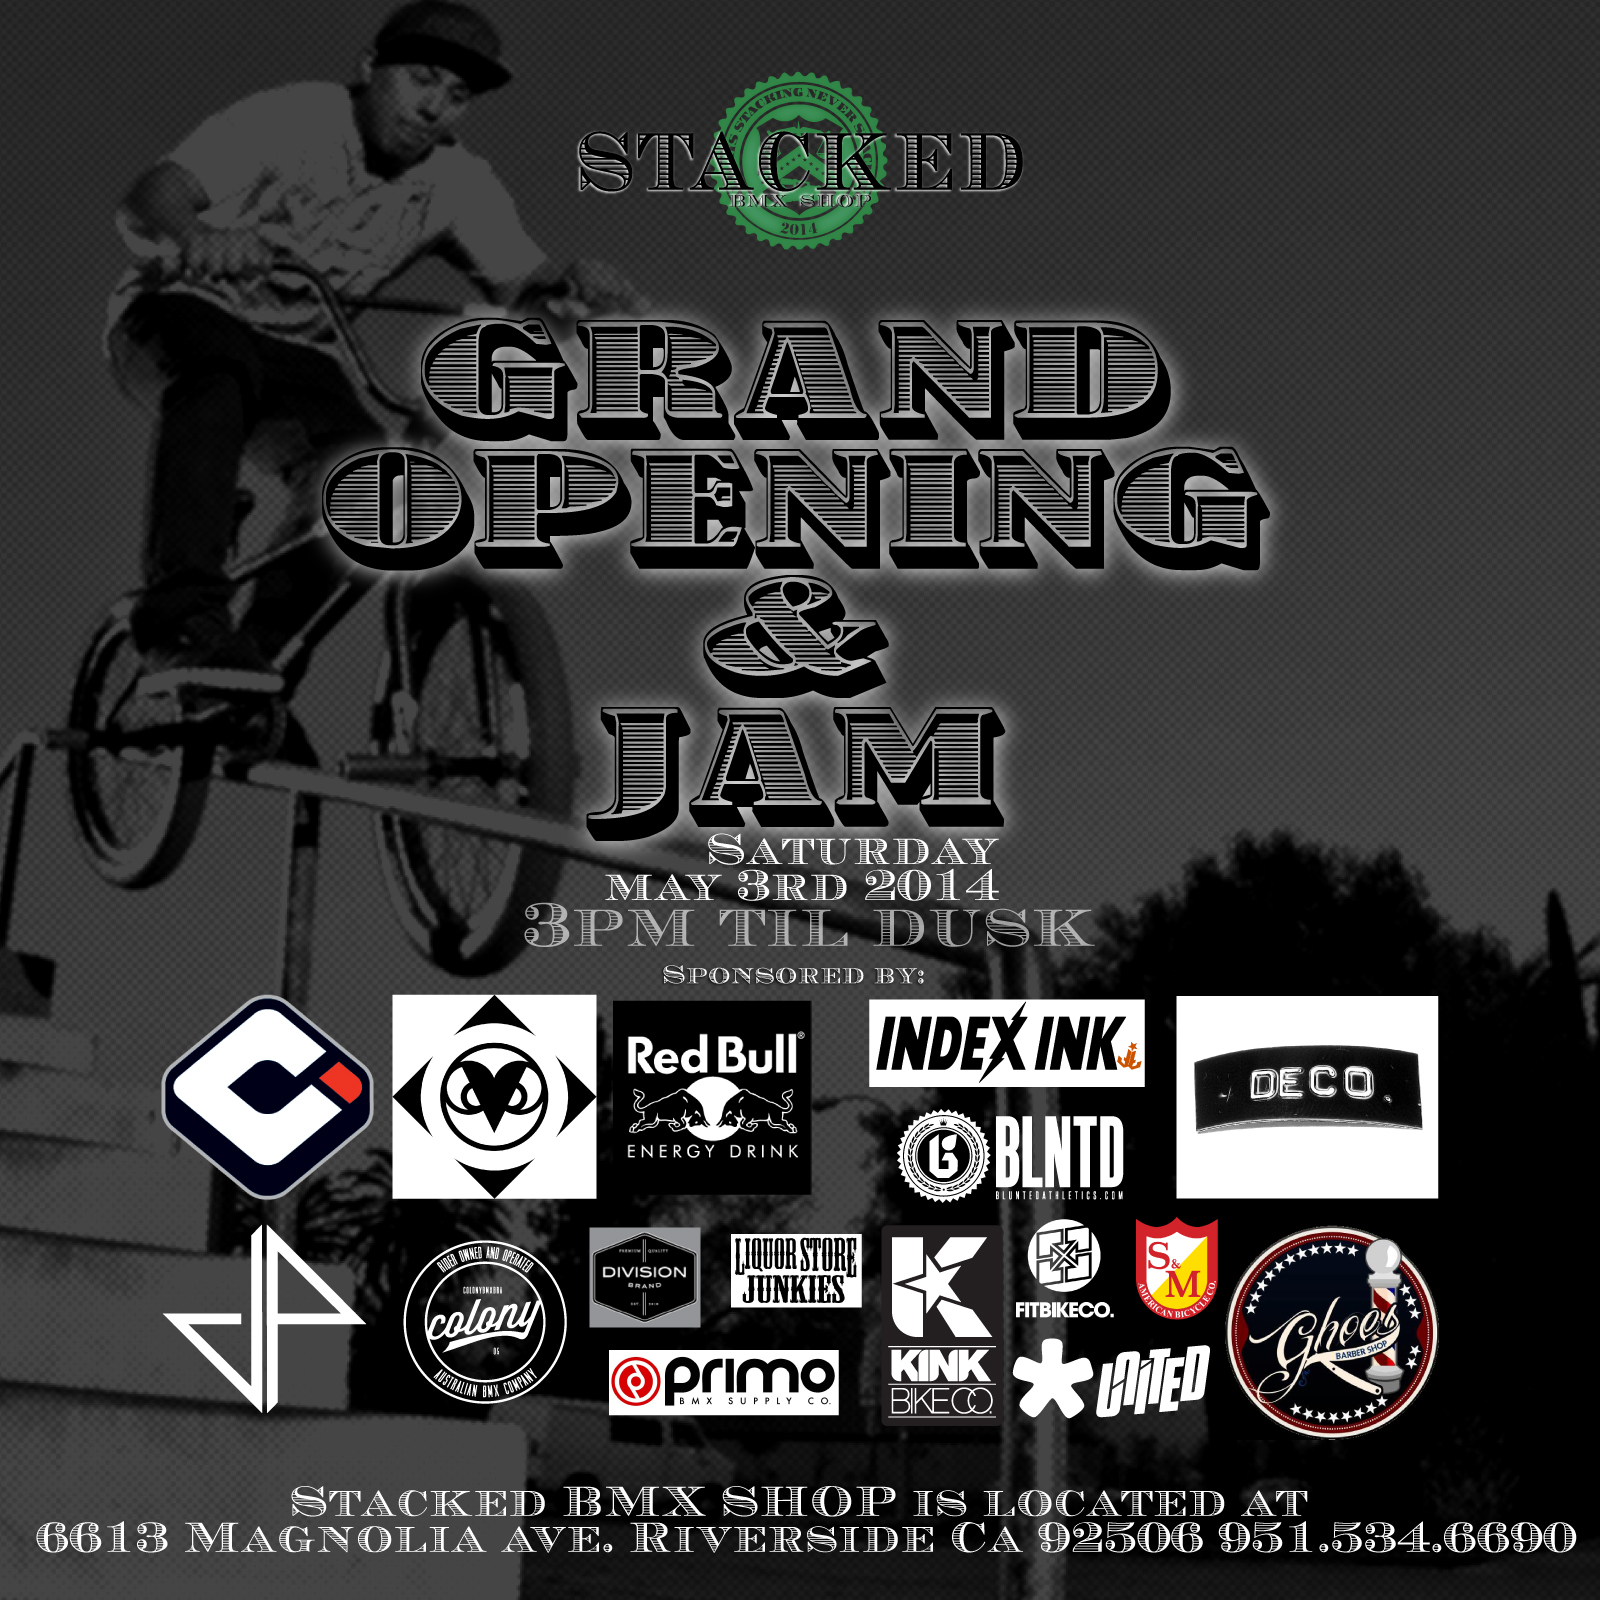 STACKED_GRAND_OPENING_FLIER